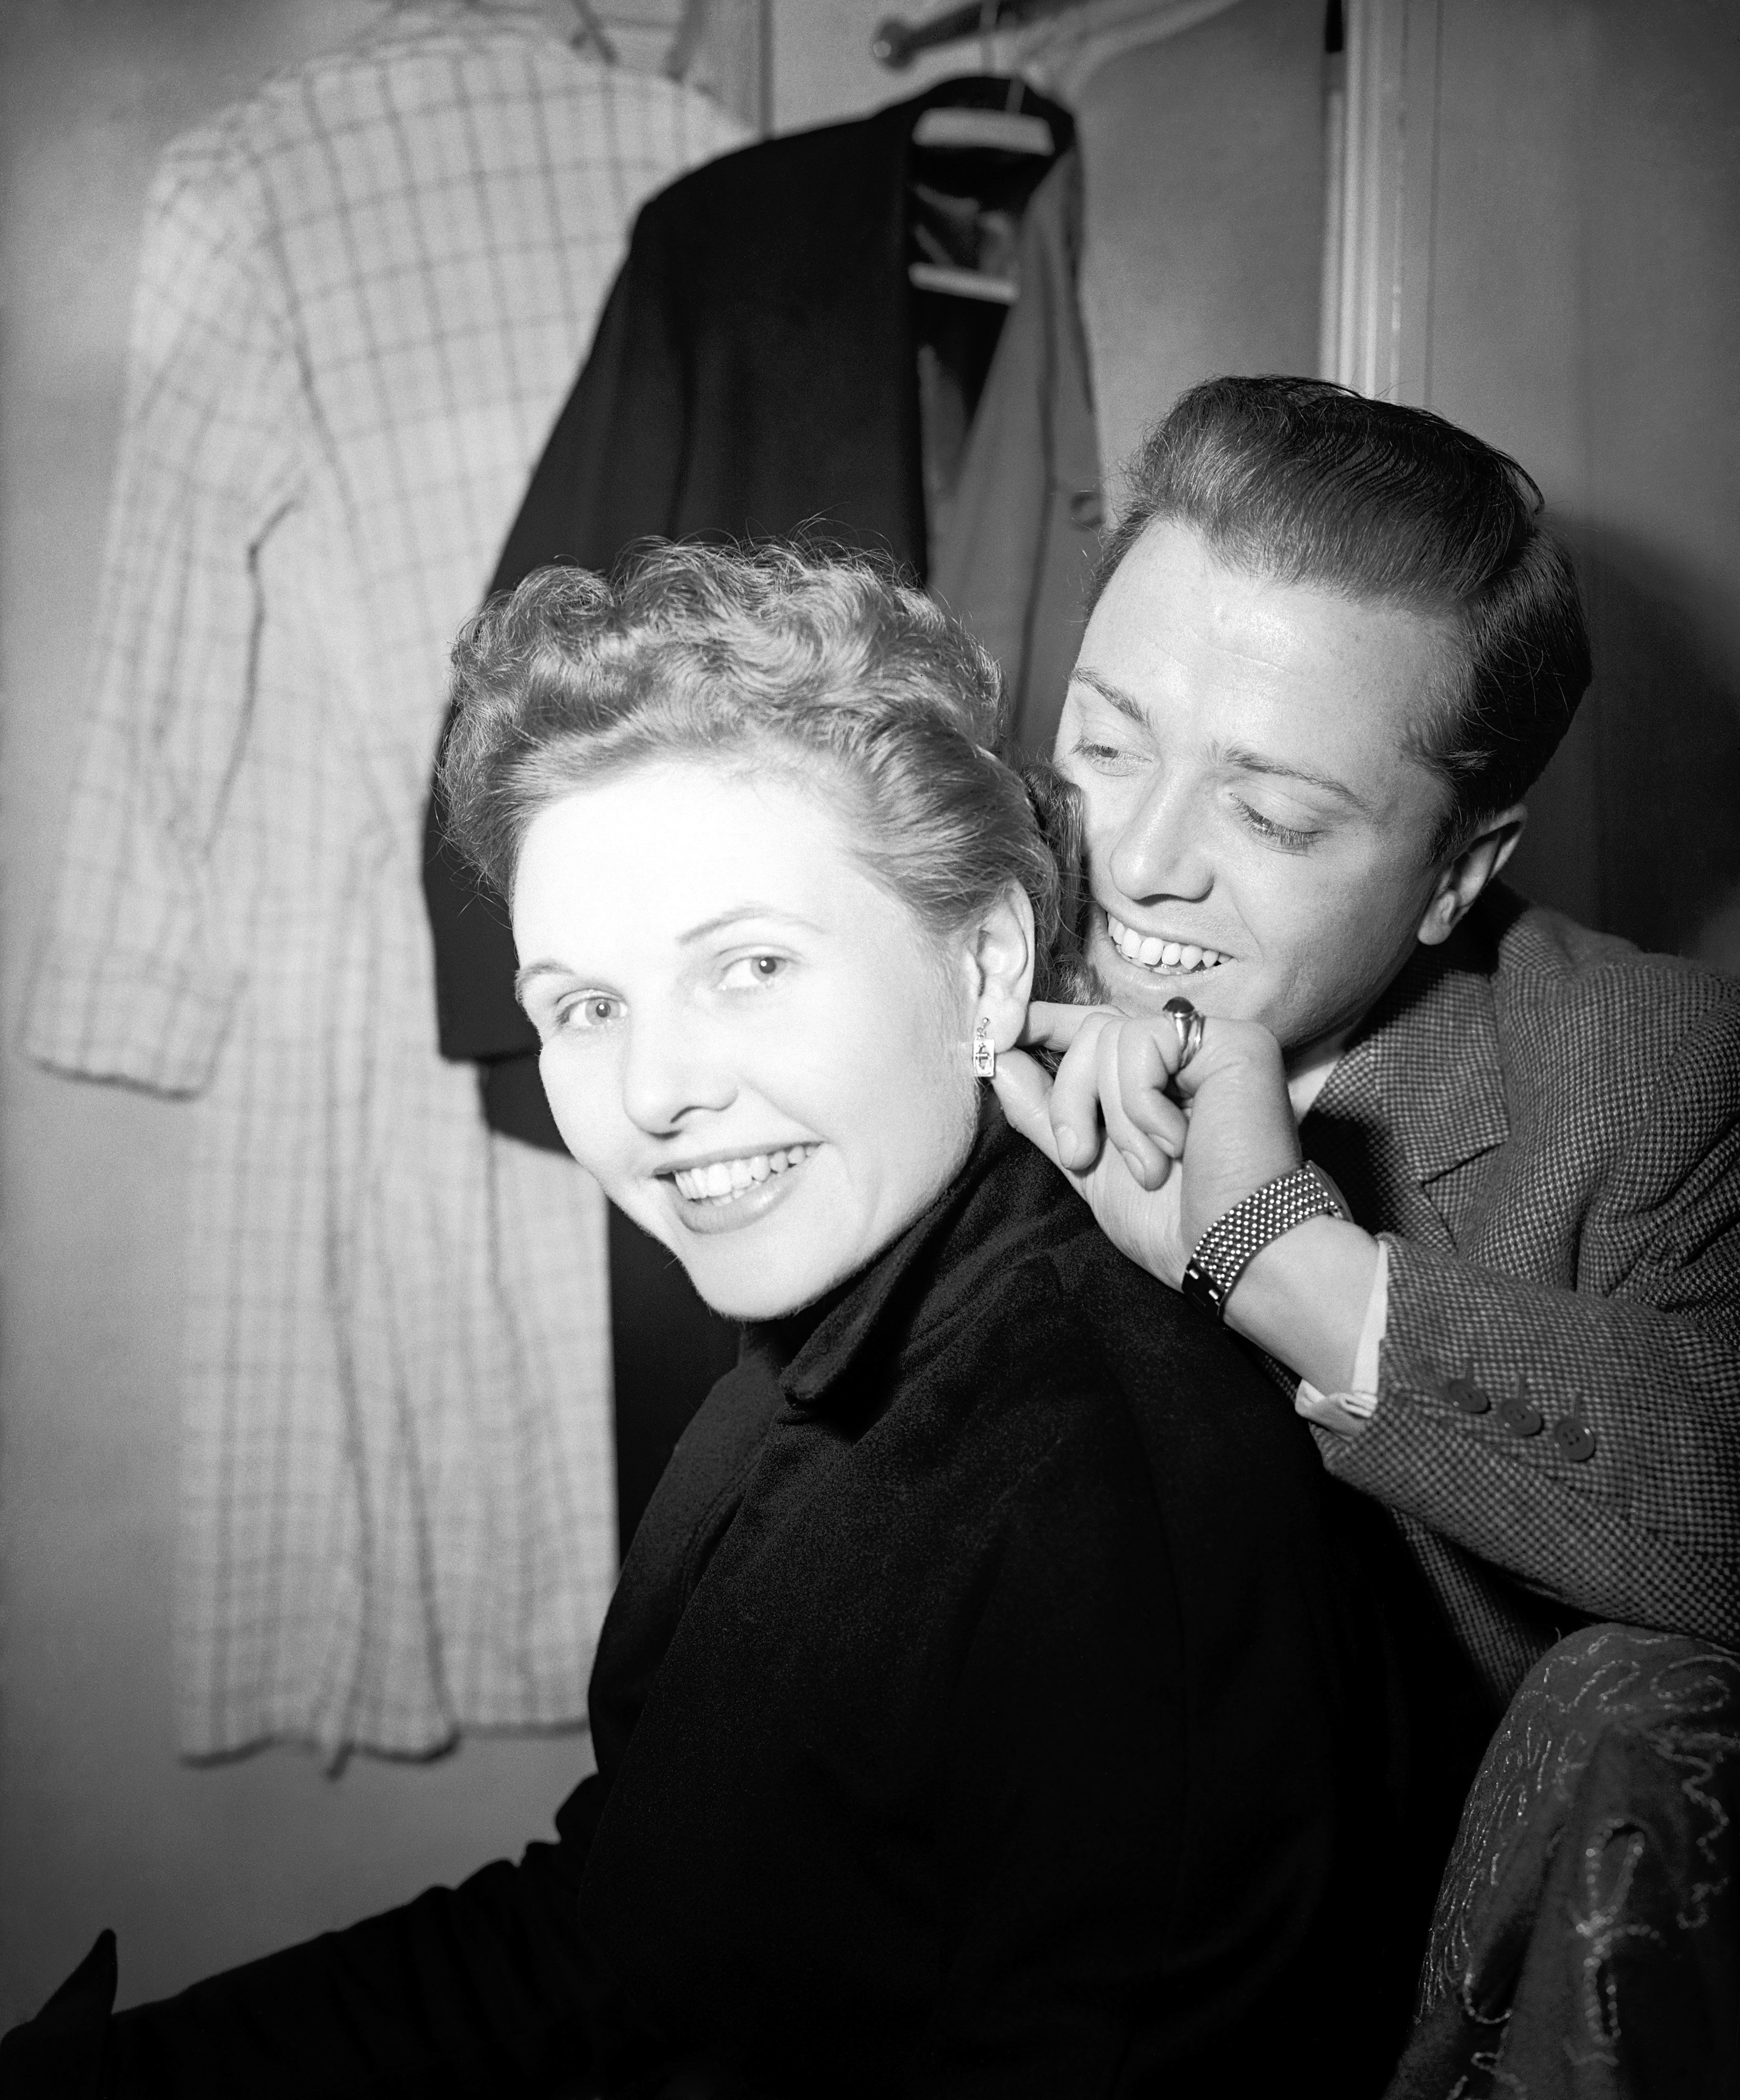 Richard Attenborough gives his wife earrings as a first night present ahead of 'The Mousetrap' opening at The Ambassadors Theatre, 1952.